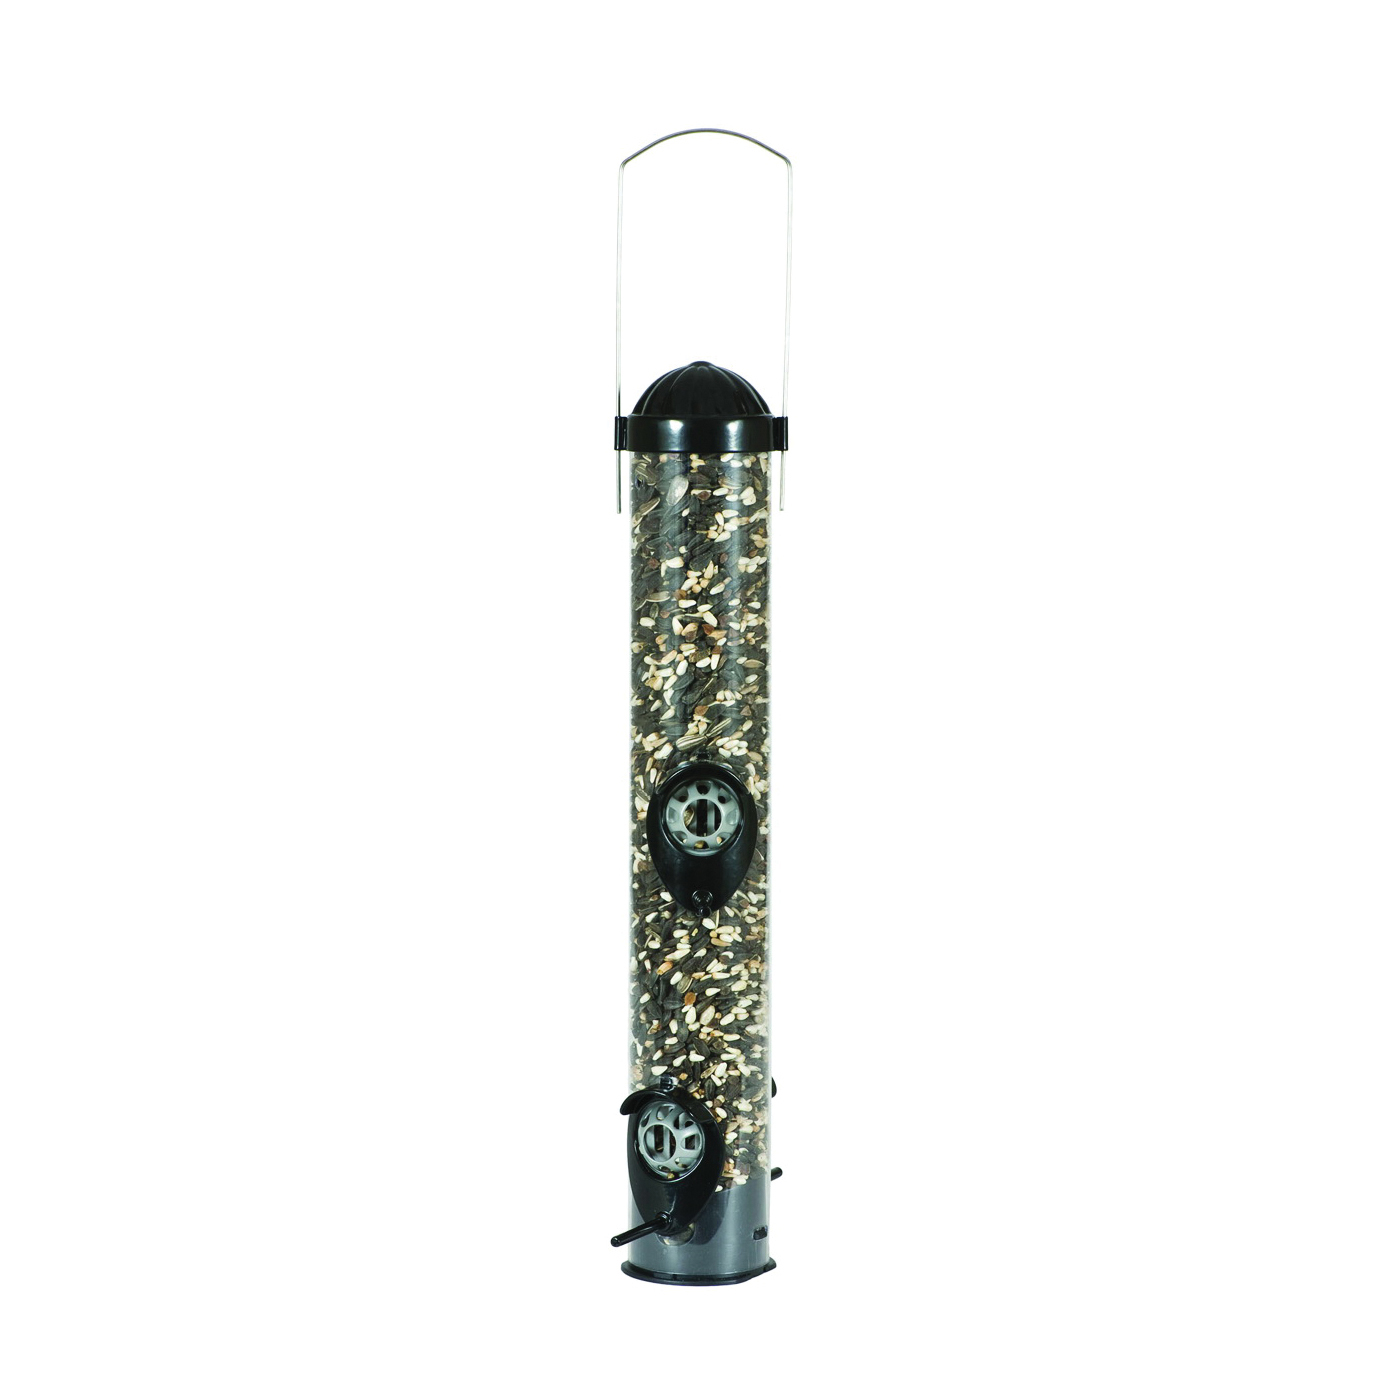 Picture of Perky-Pet 386 Squirrel Shield Feeder, 16-1/2 in H, 1 lb, Metal/Plastic, Black, Hanging/Pole Mounting